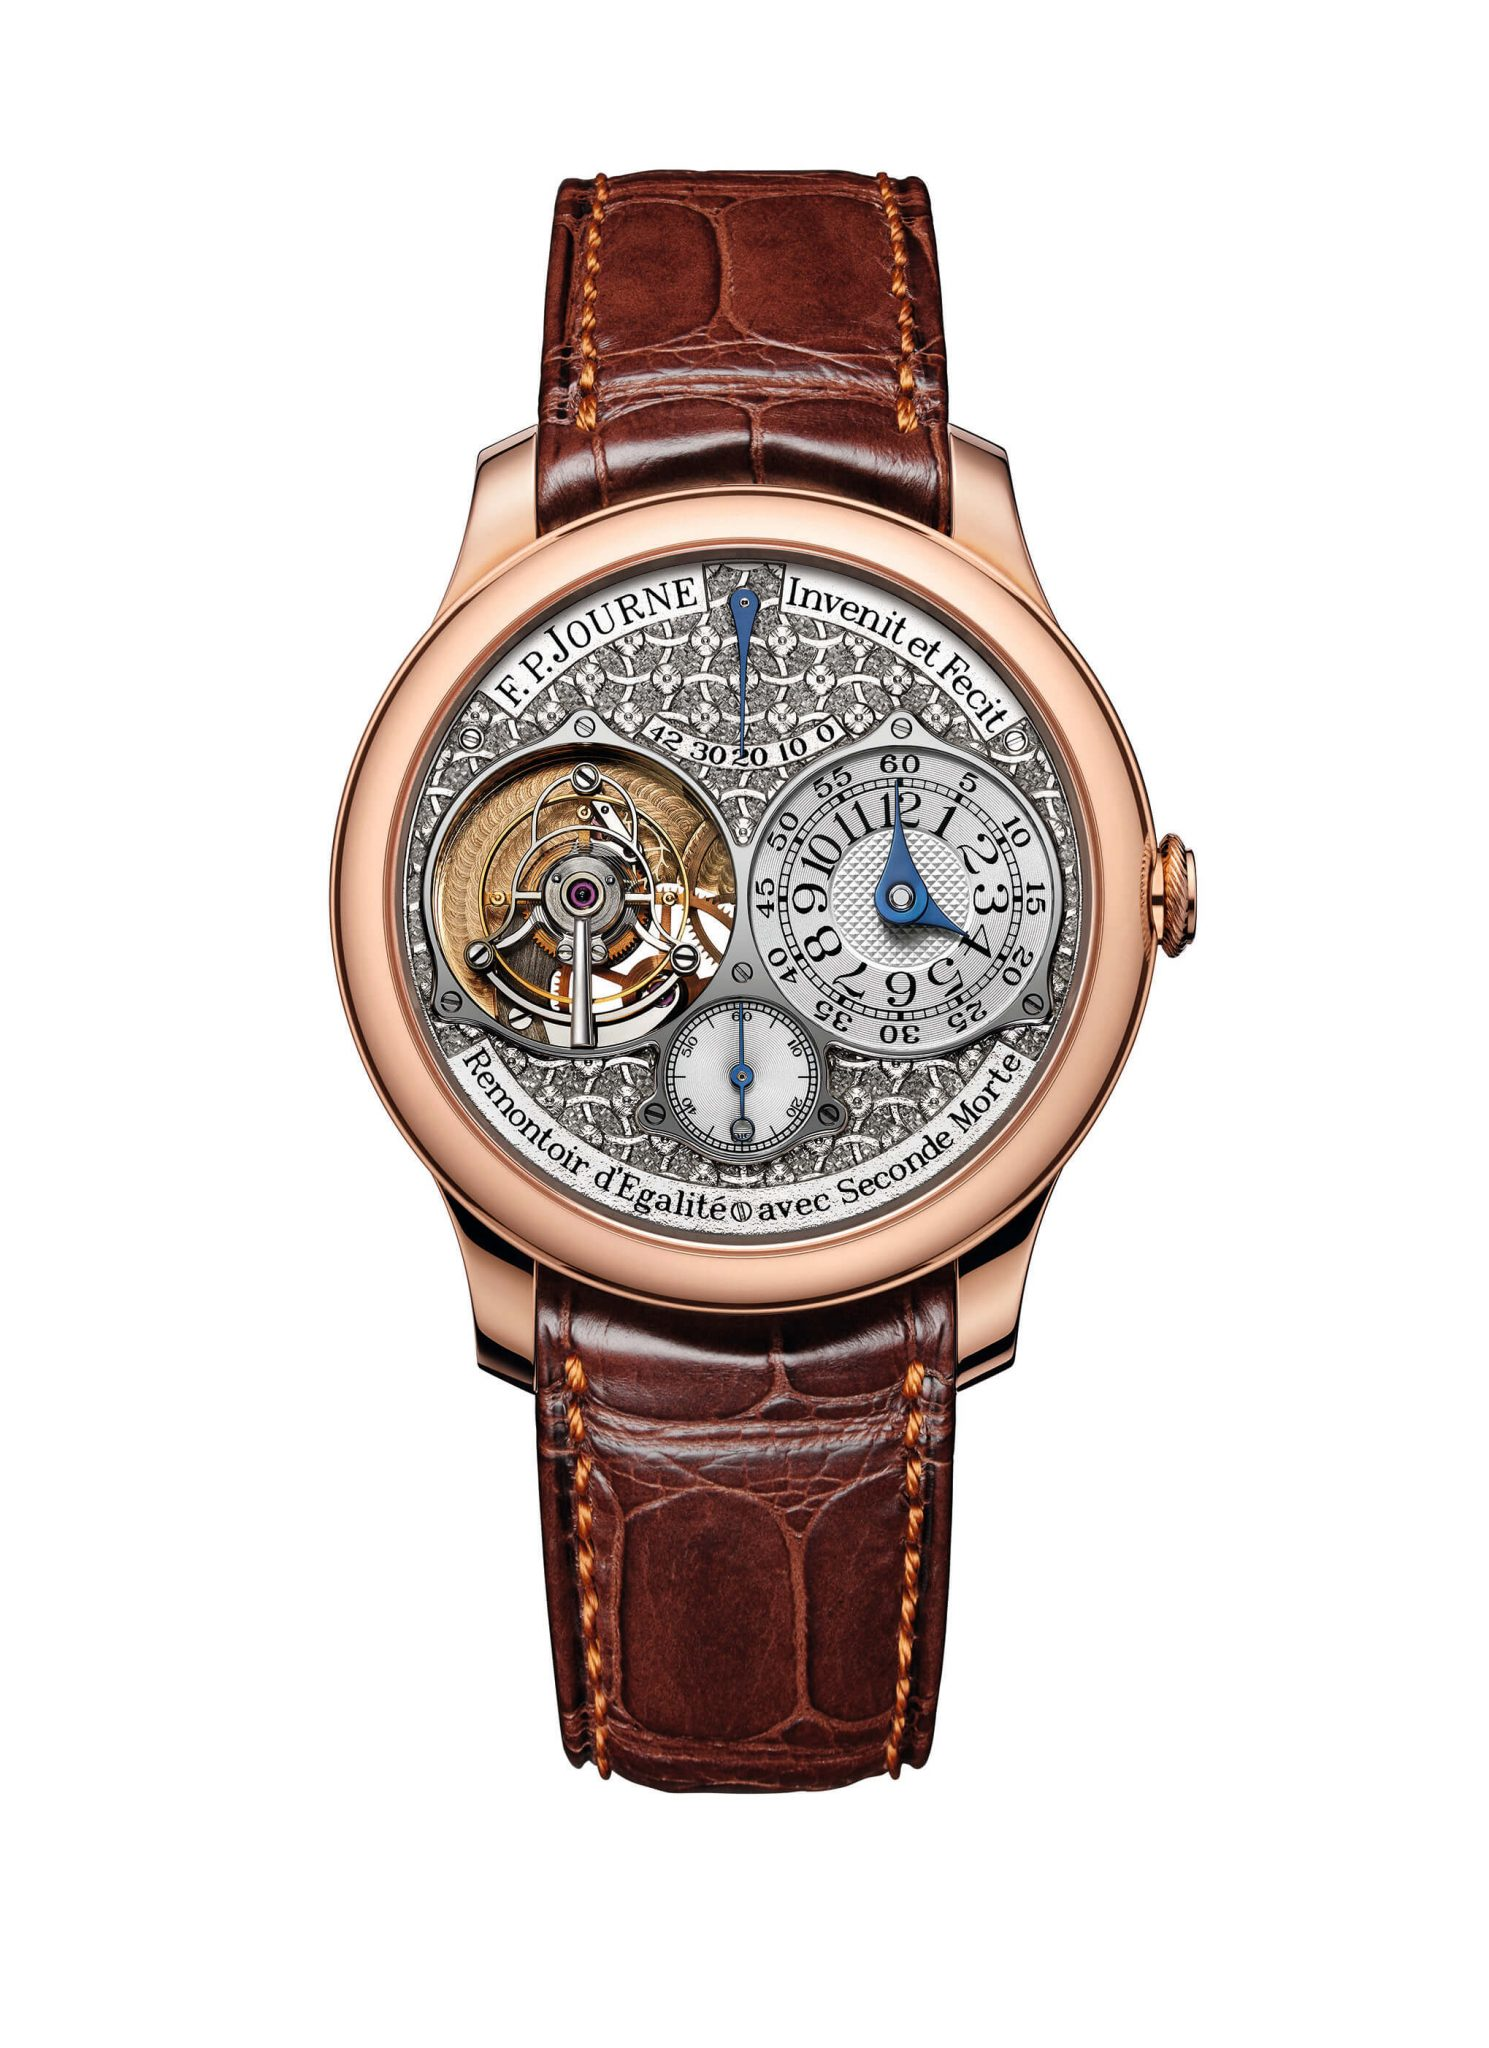 TN_or_cuir_fb_regence F. P. Journe